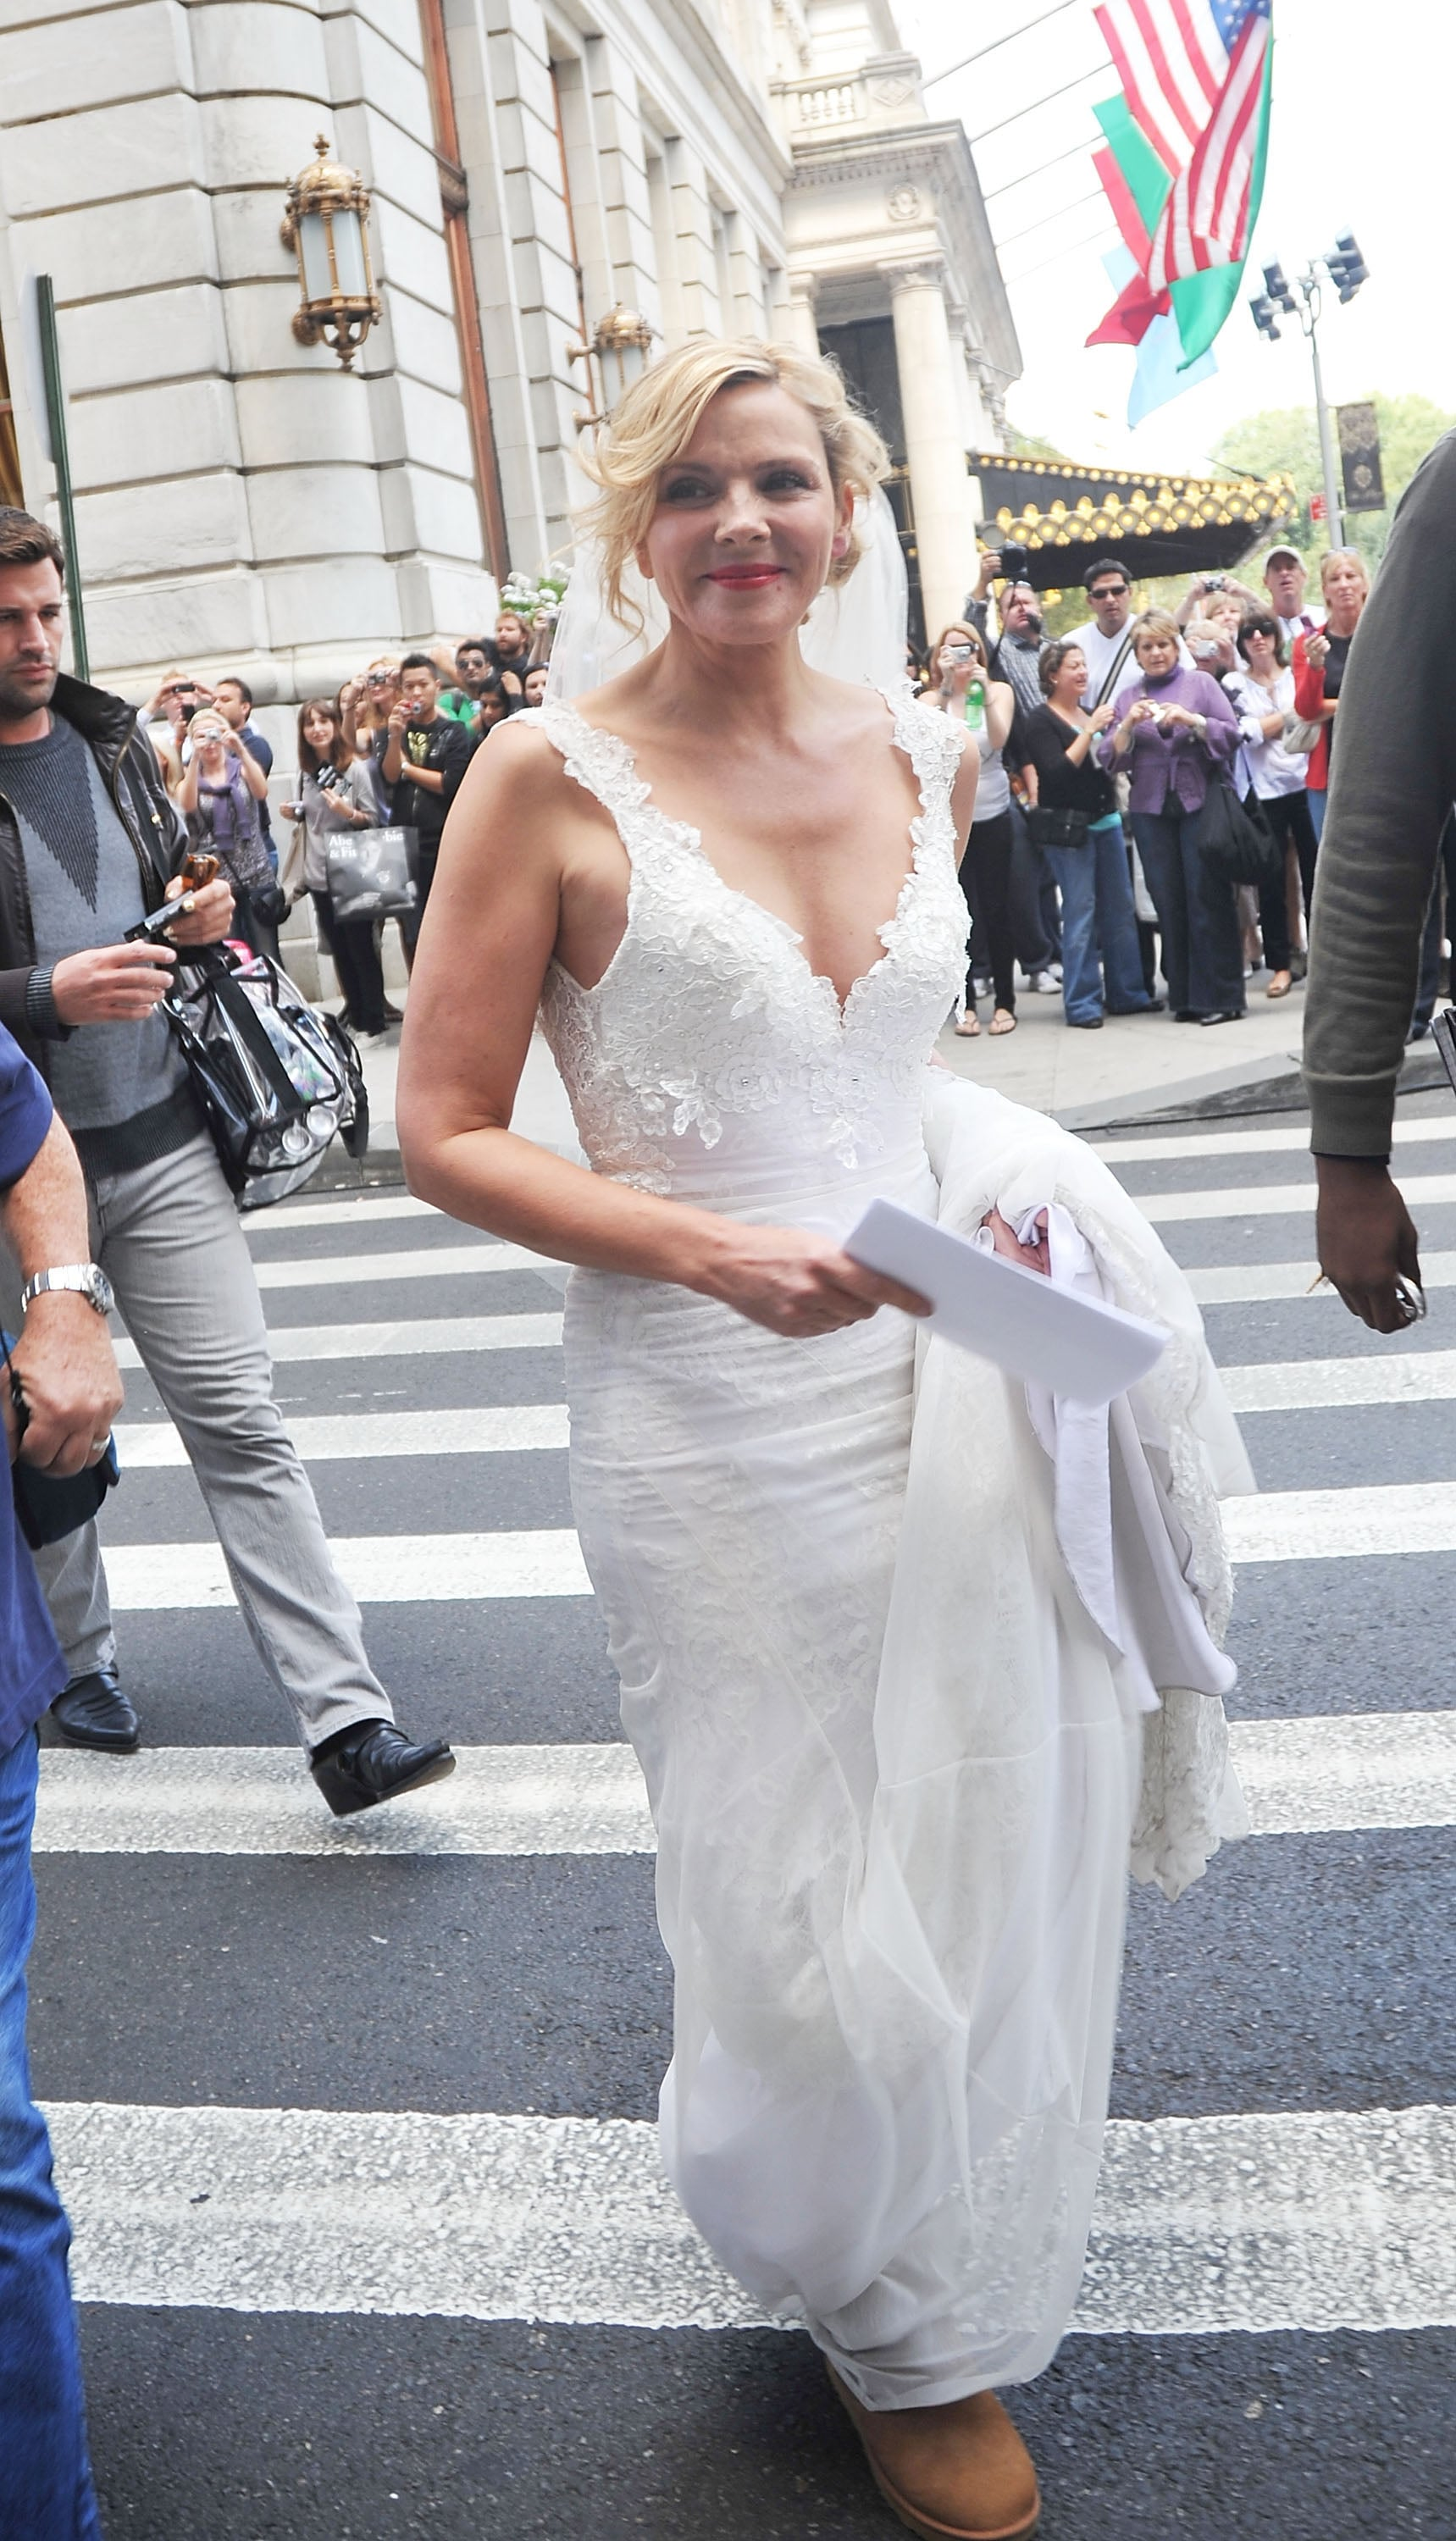 She never marries in the movies, but boy can Samantha rock a wedding gown.